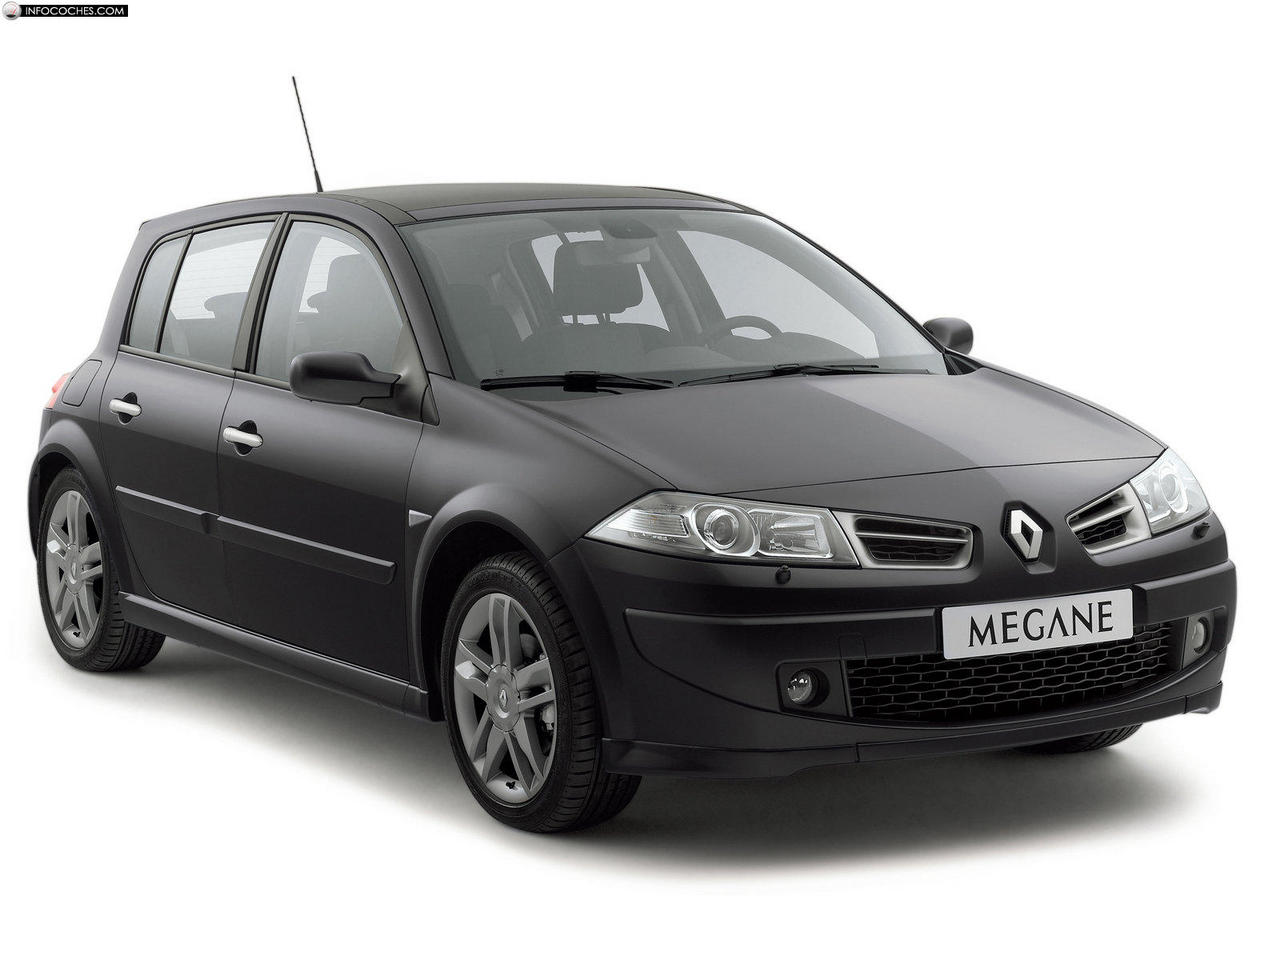 renault megane ii 1 5 dci 82 hp. Black Bedroom Furniture Sets. Home Design Ideas